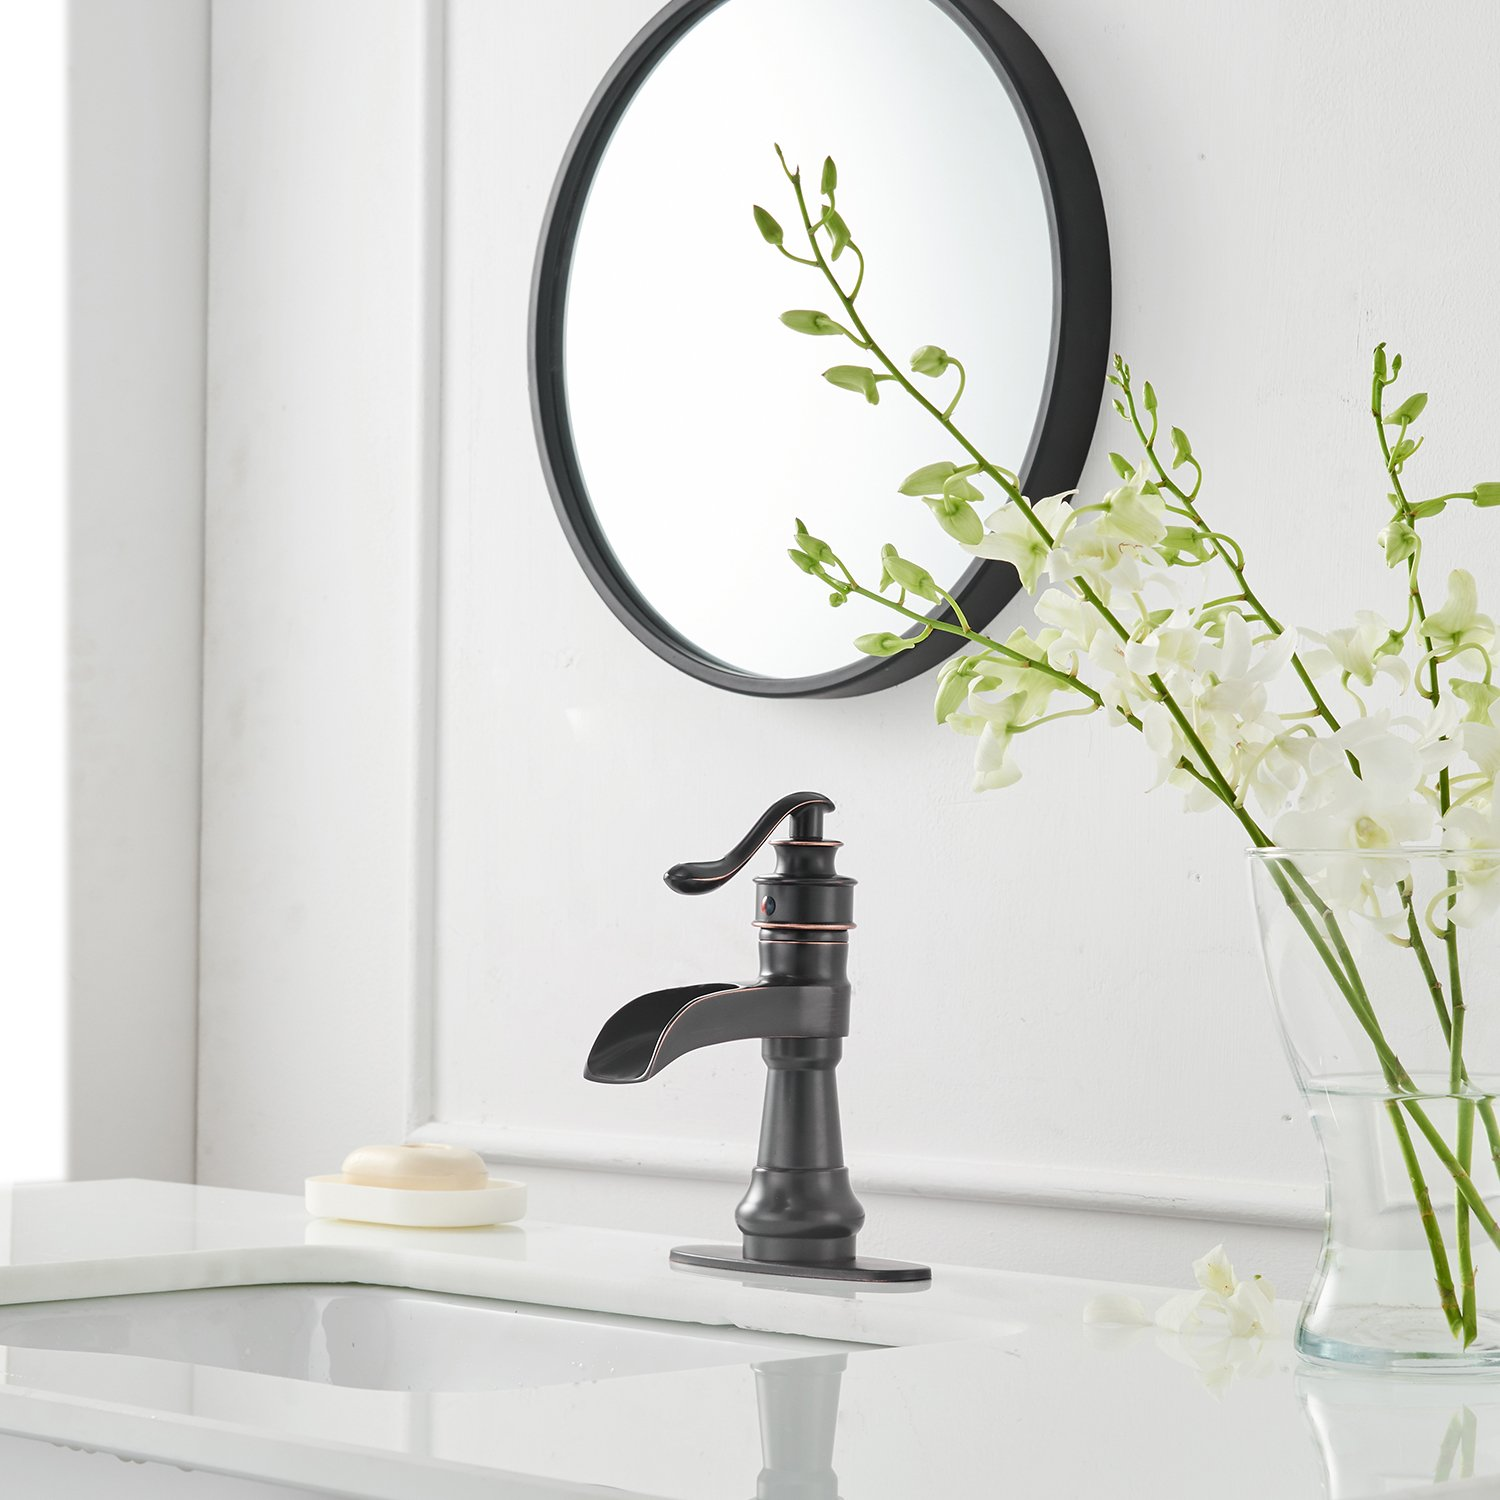 Greenspring Waterfall Spout Single Handle Lever Hole Commercial Bathroom Sink Vessel Faucet Tall Body,Brushed Nickel